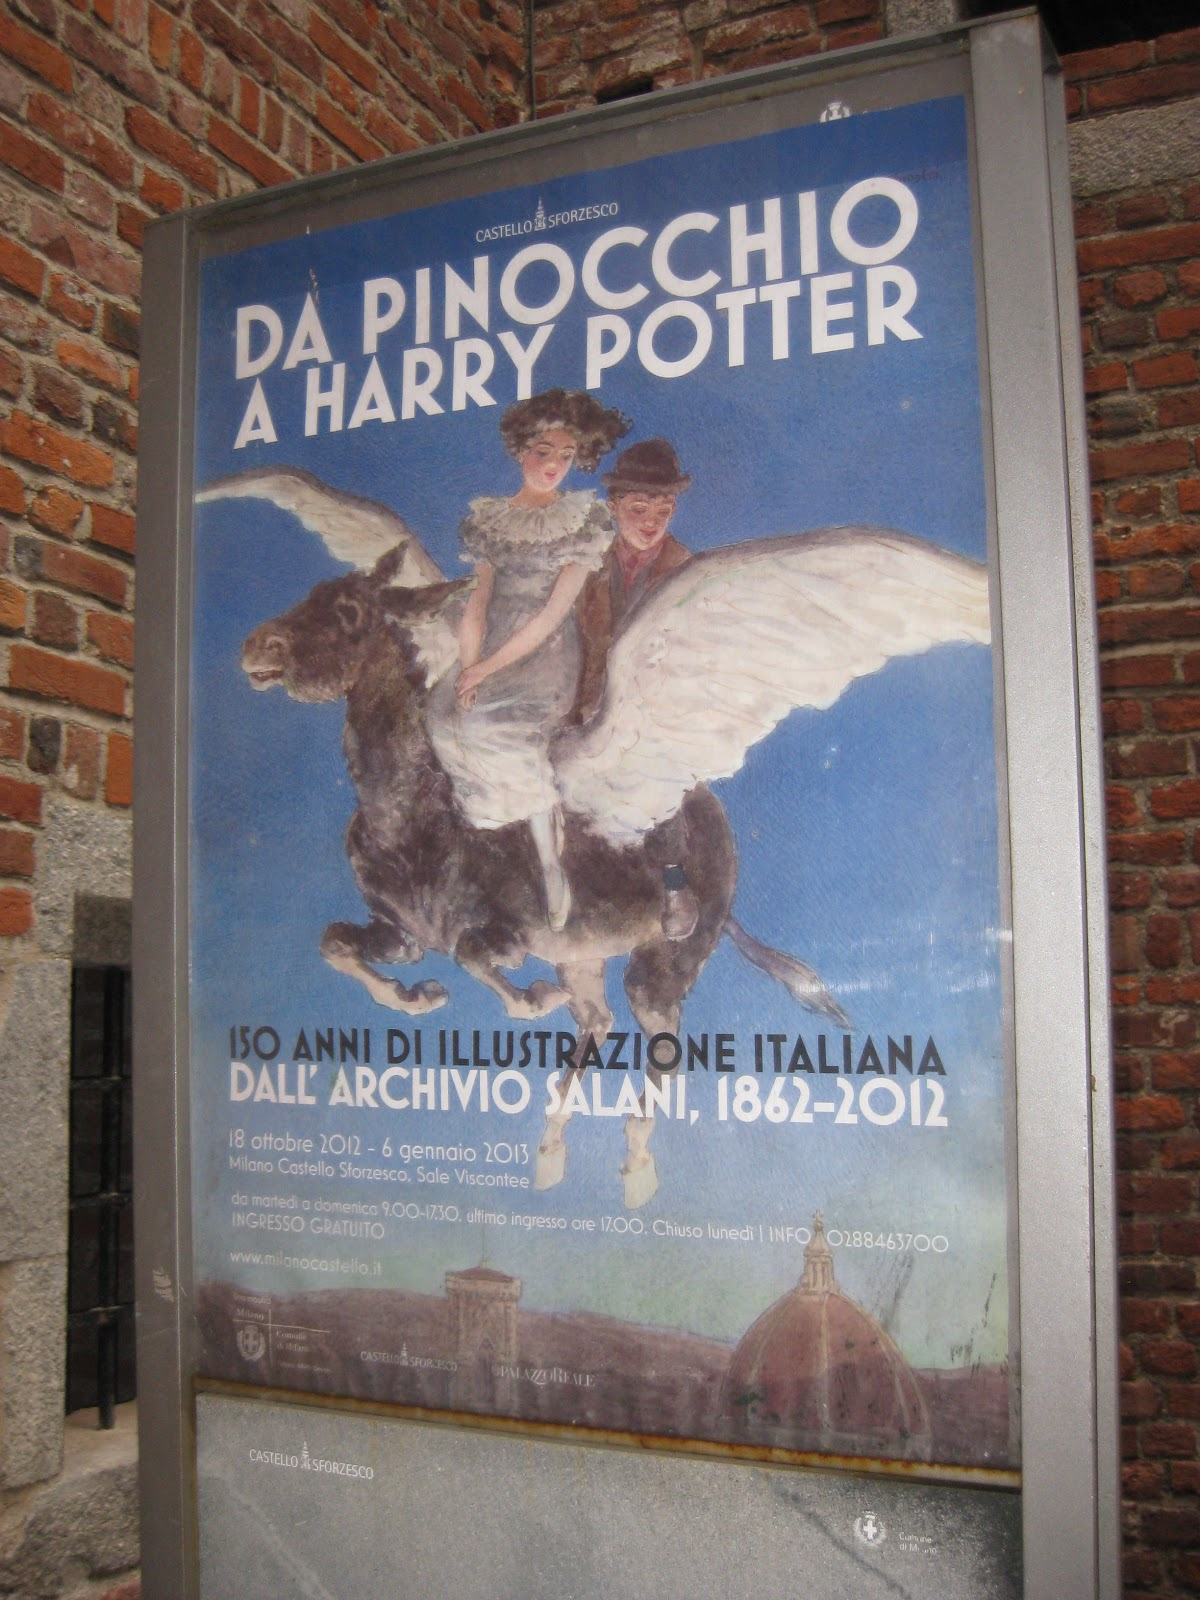 so you think you can france milano lago di como from pinocchio to harry potter yes please